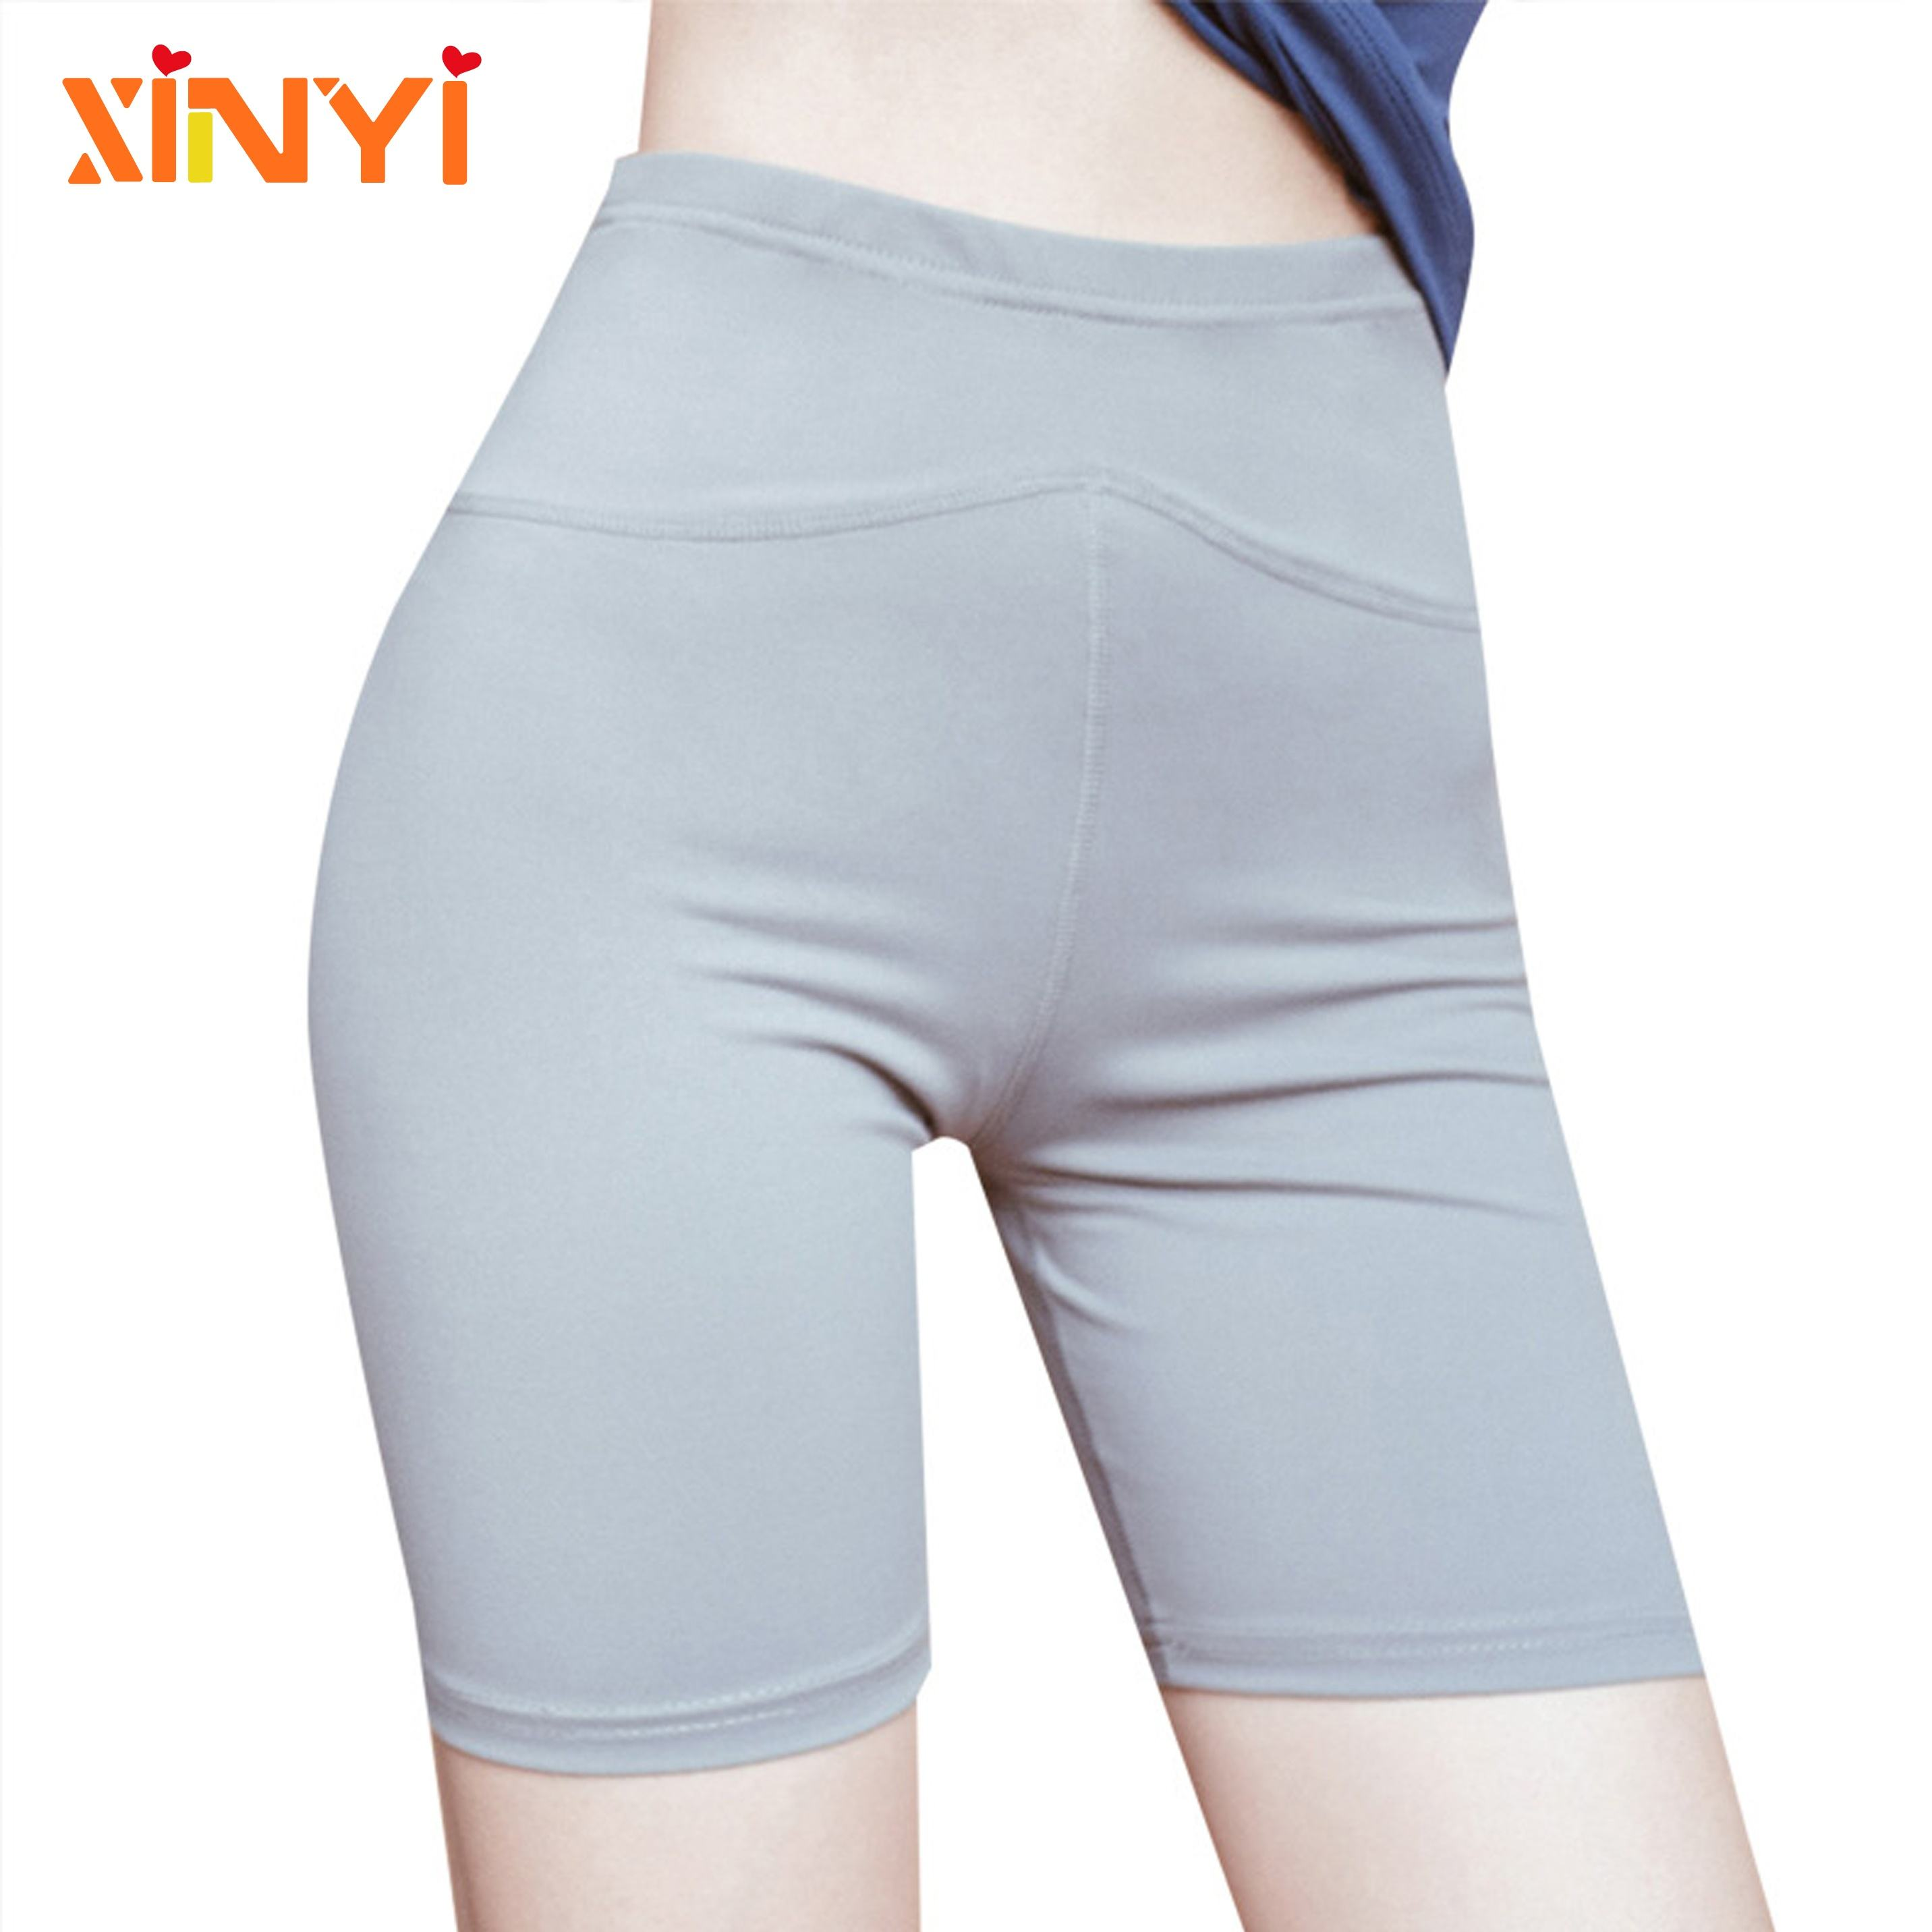 Wholesale Sportswear Gym Leggings Woman Fitness Fold Over Maternity Yoga Shorts India